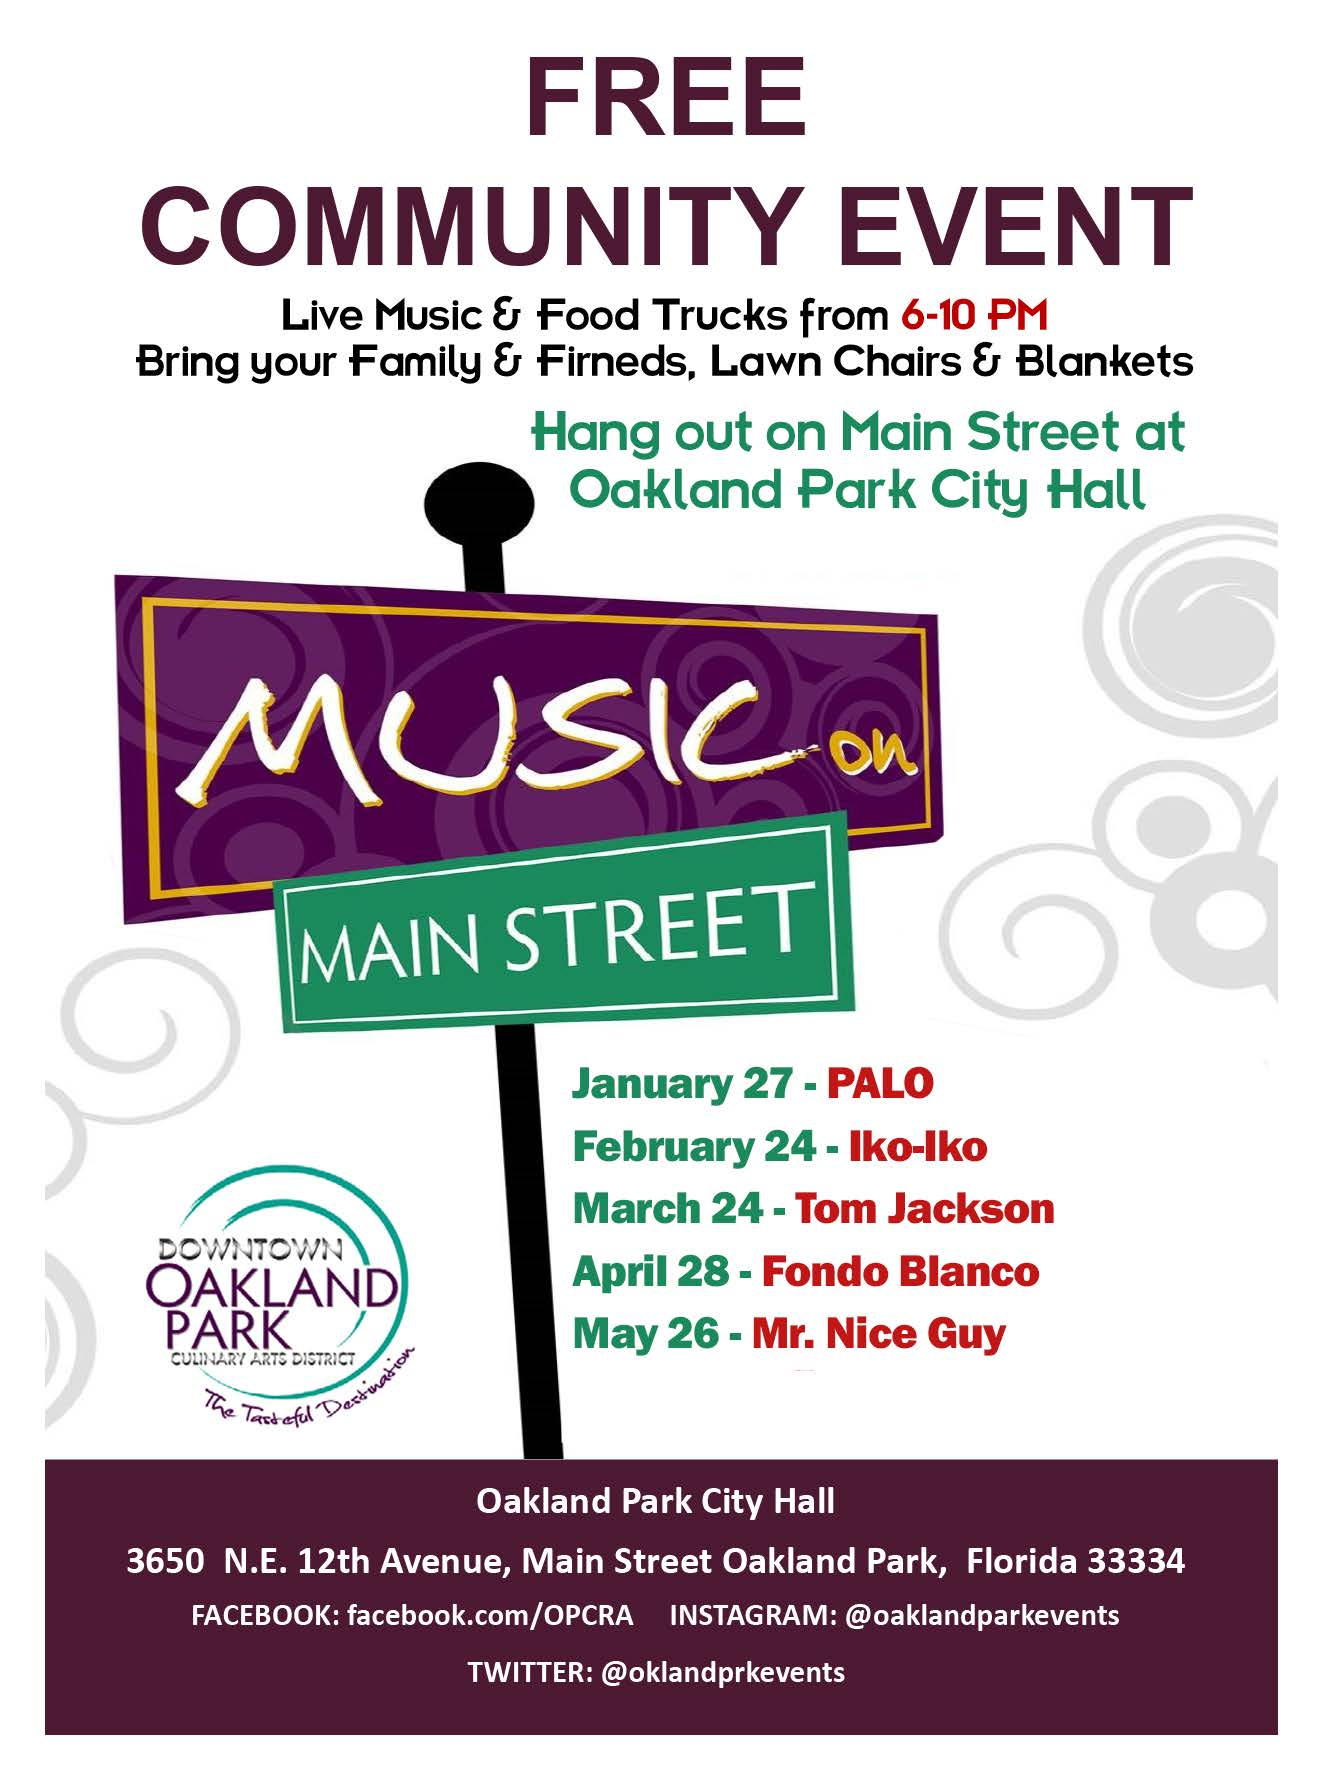 City of Oakland Park - Music on Main Street